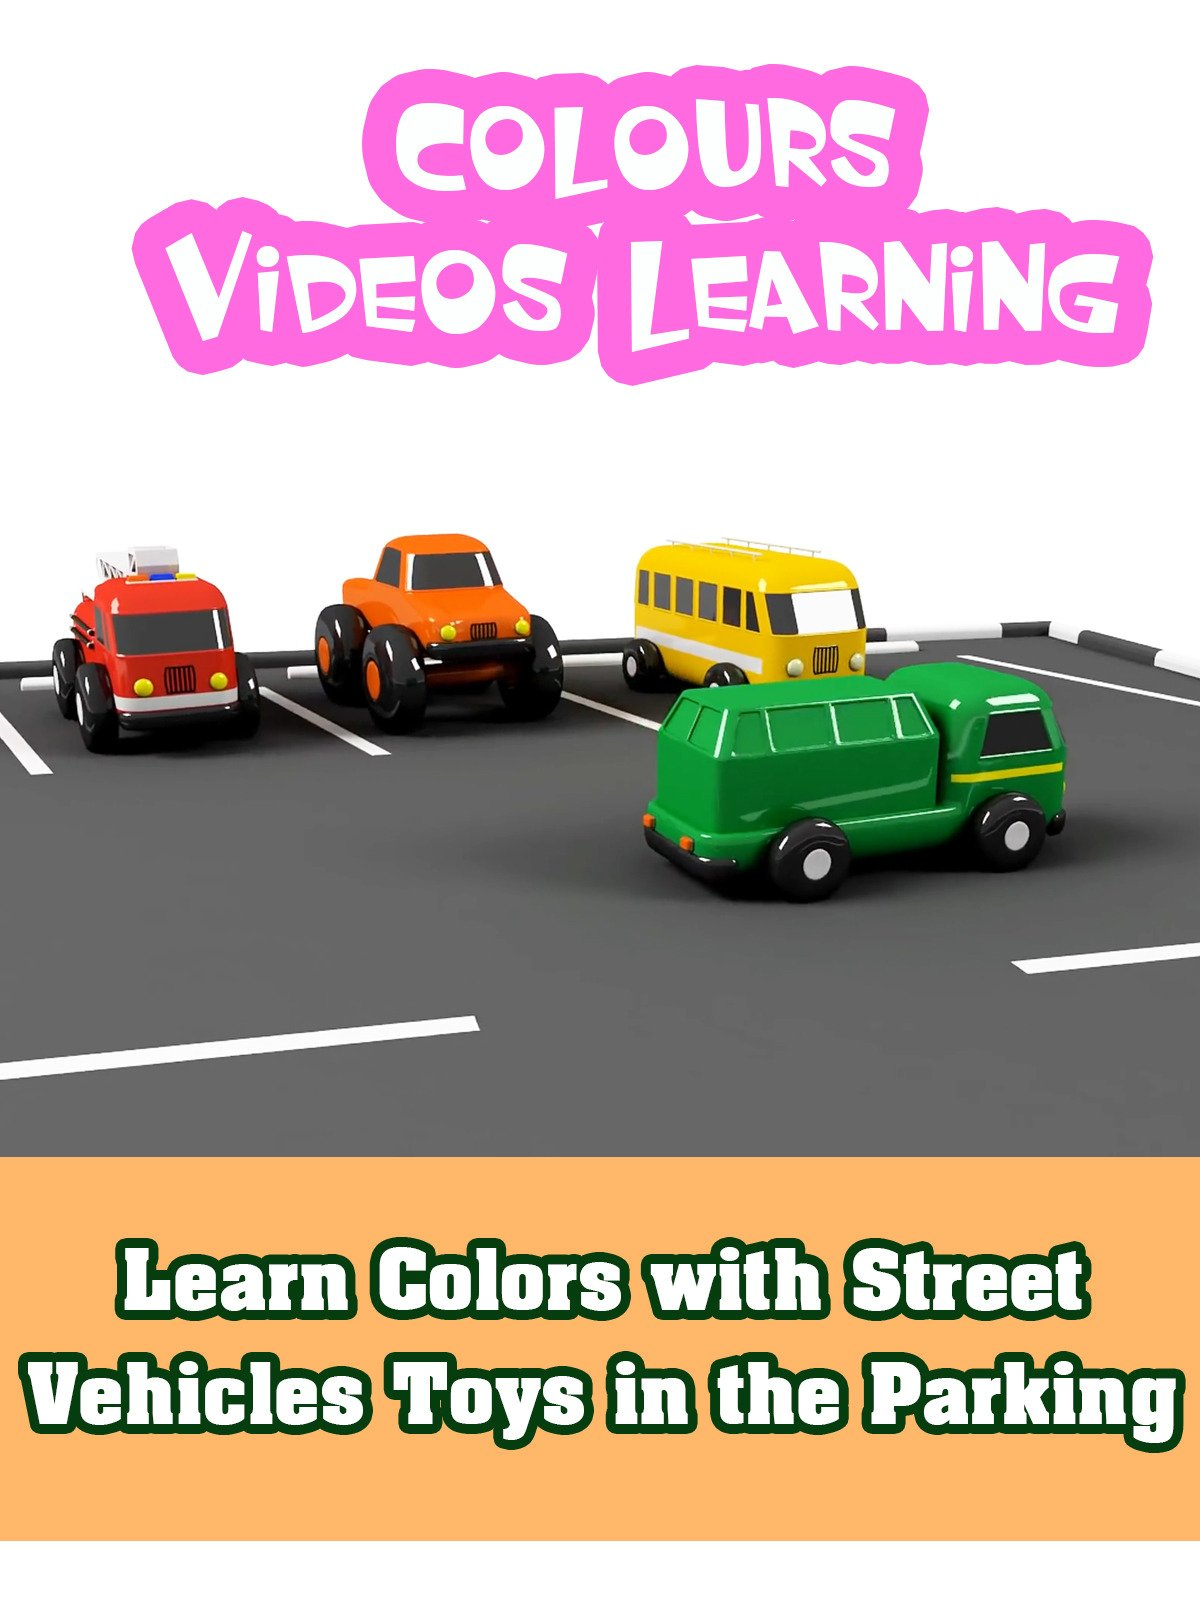 Learn Colors with Street Vehicles Toys in the Parking